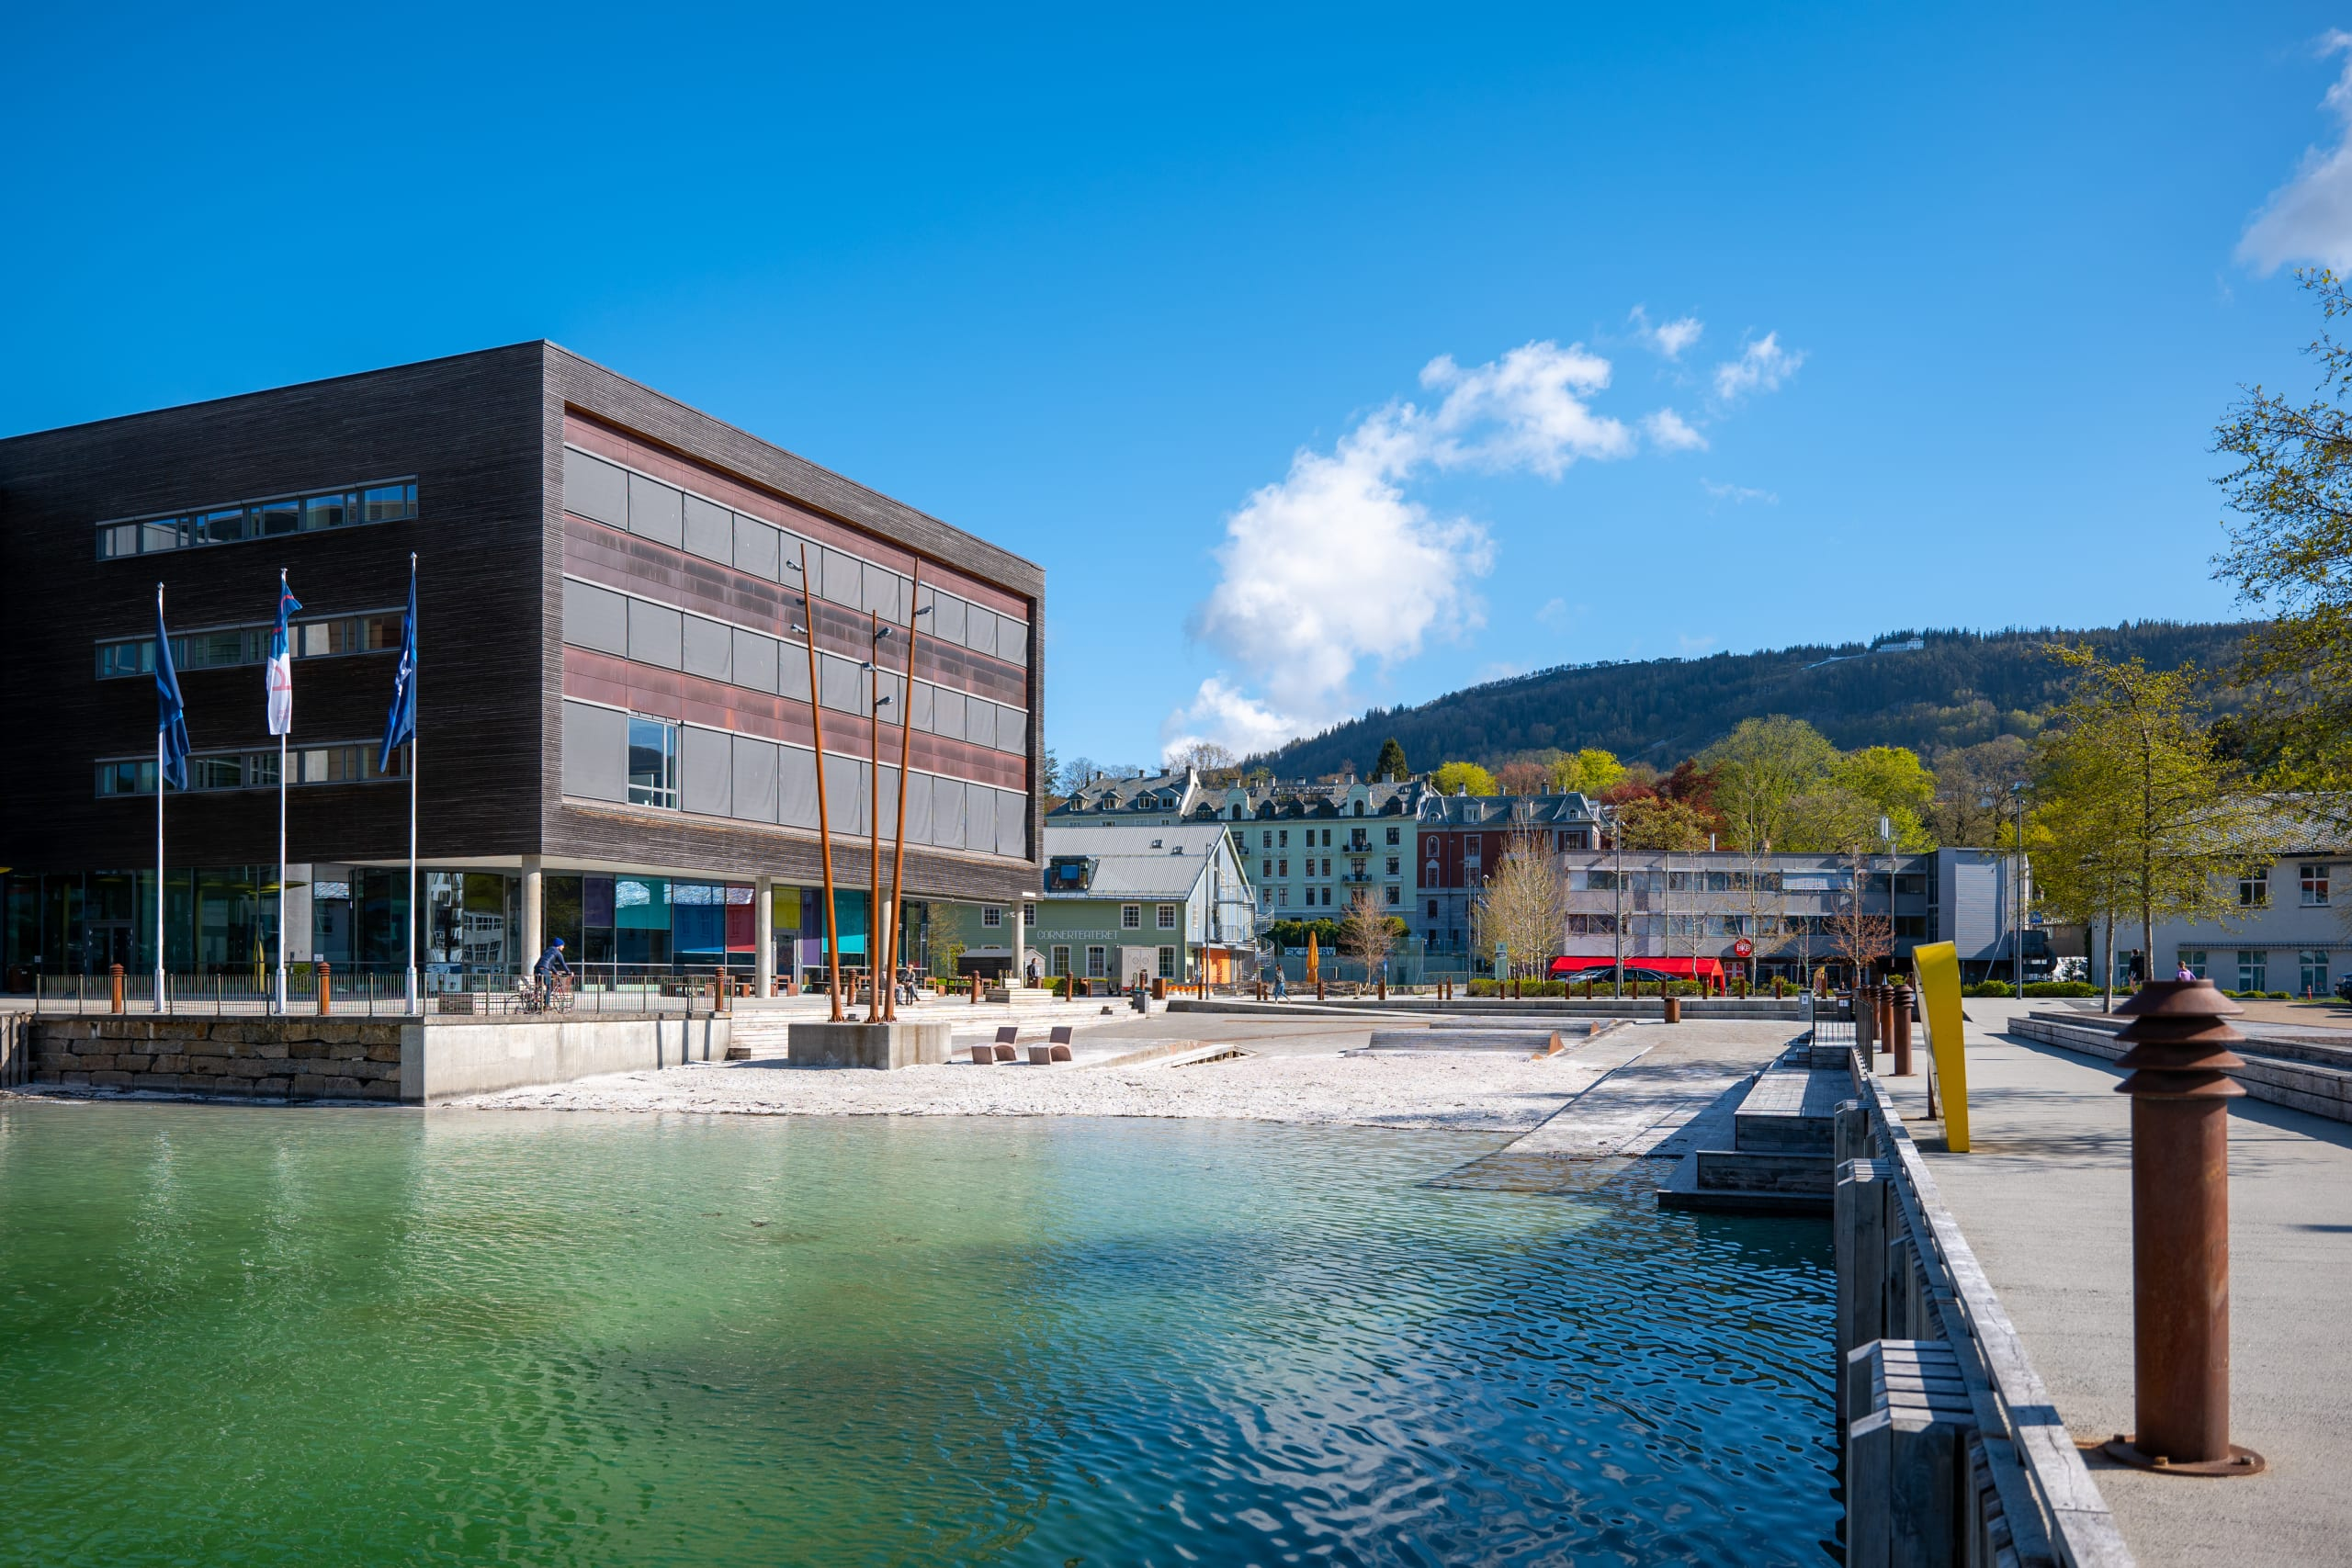 Urban beach at Marineholmen in Bergen